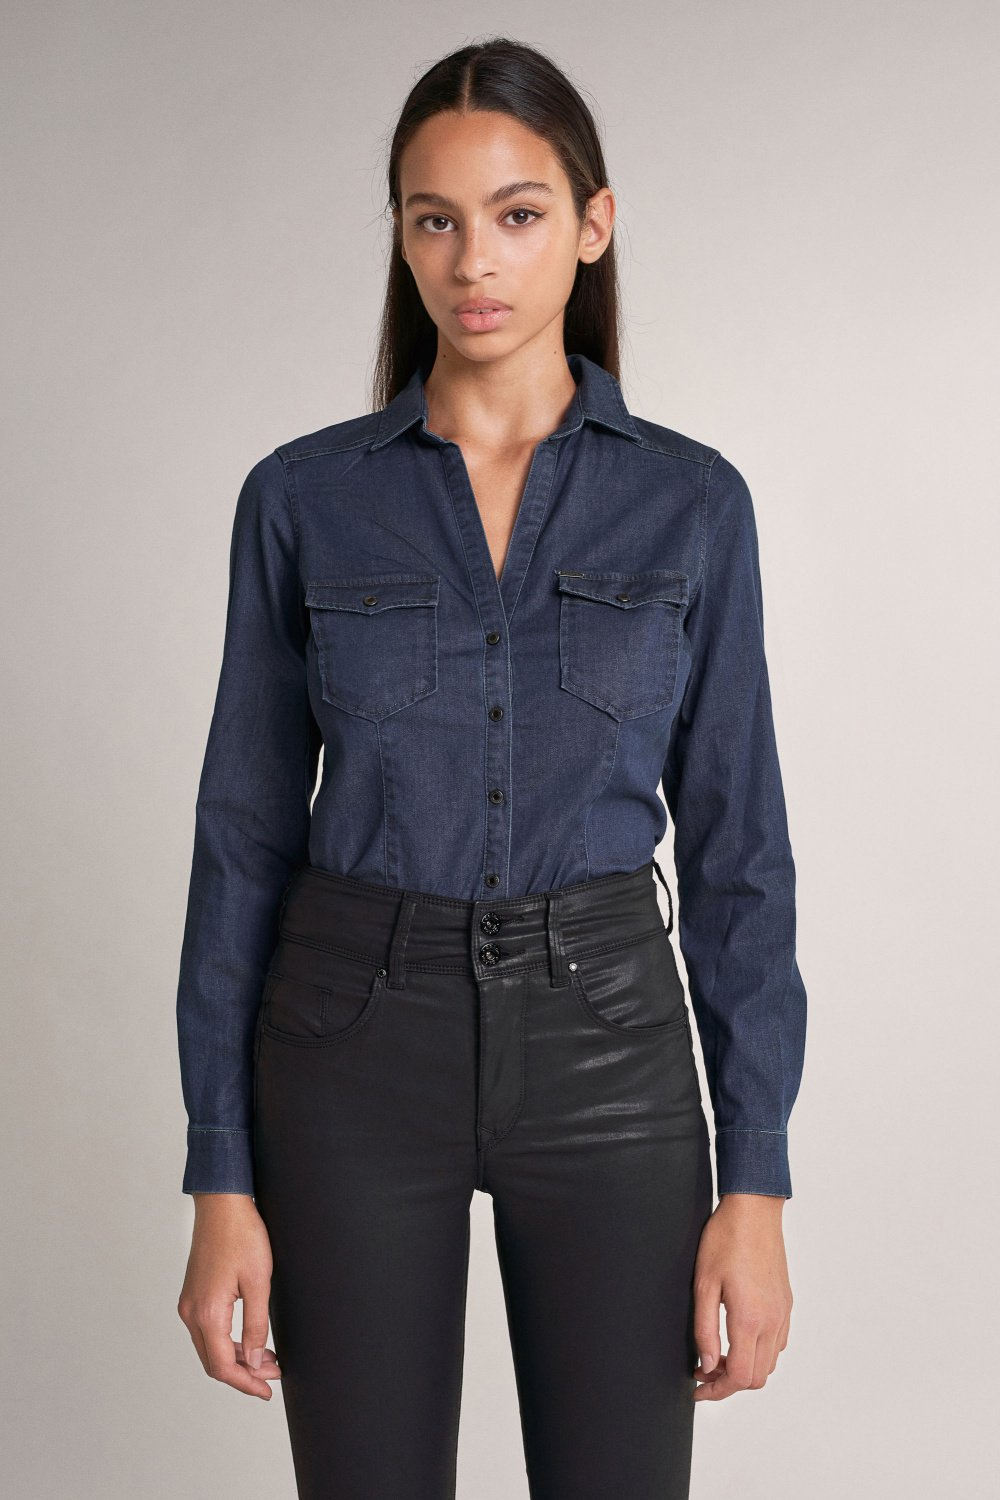 Body shirt with pockets - Salsa